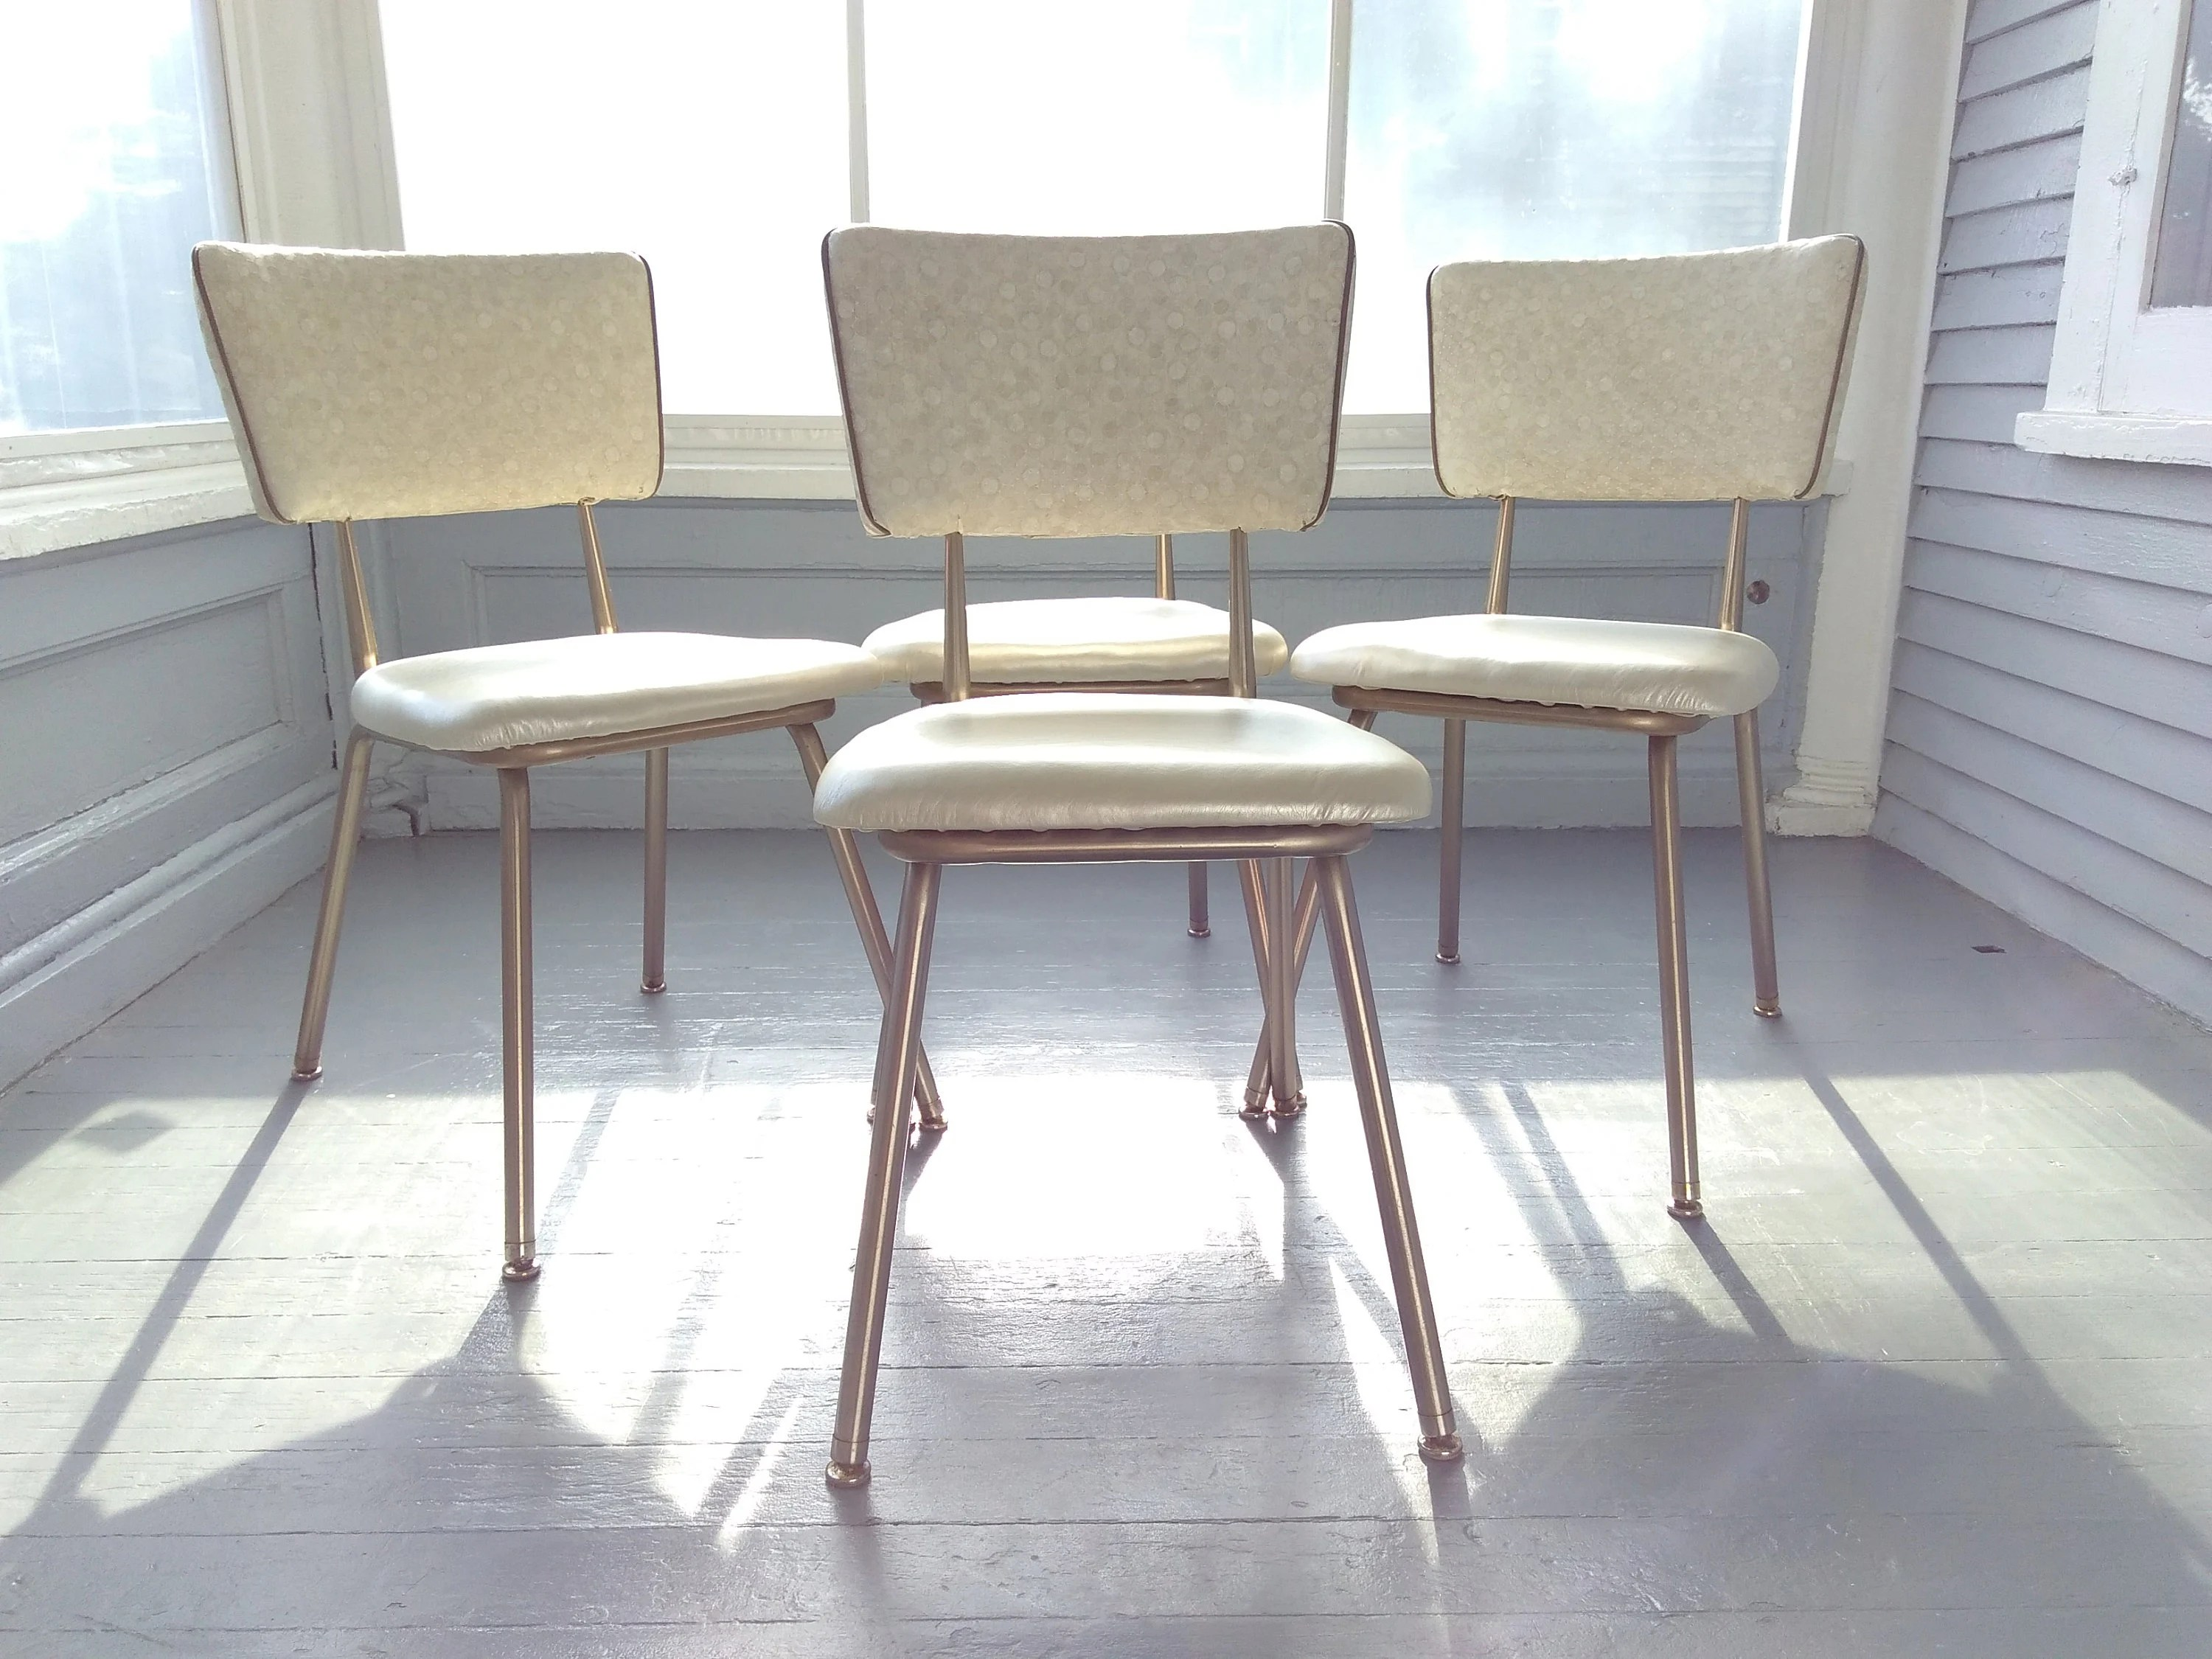 Vintage Kitchen Chairs Set Of Four 1960s Lloyd Mfg Co Dinette Chairs Vinyl Chairs Metal Chairs Kitchen Decor Rhymeswithdaughter